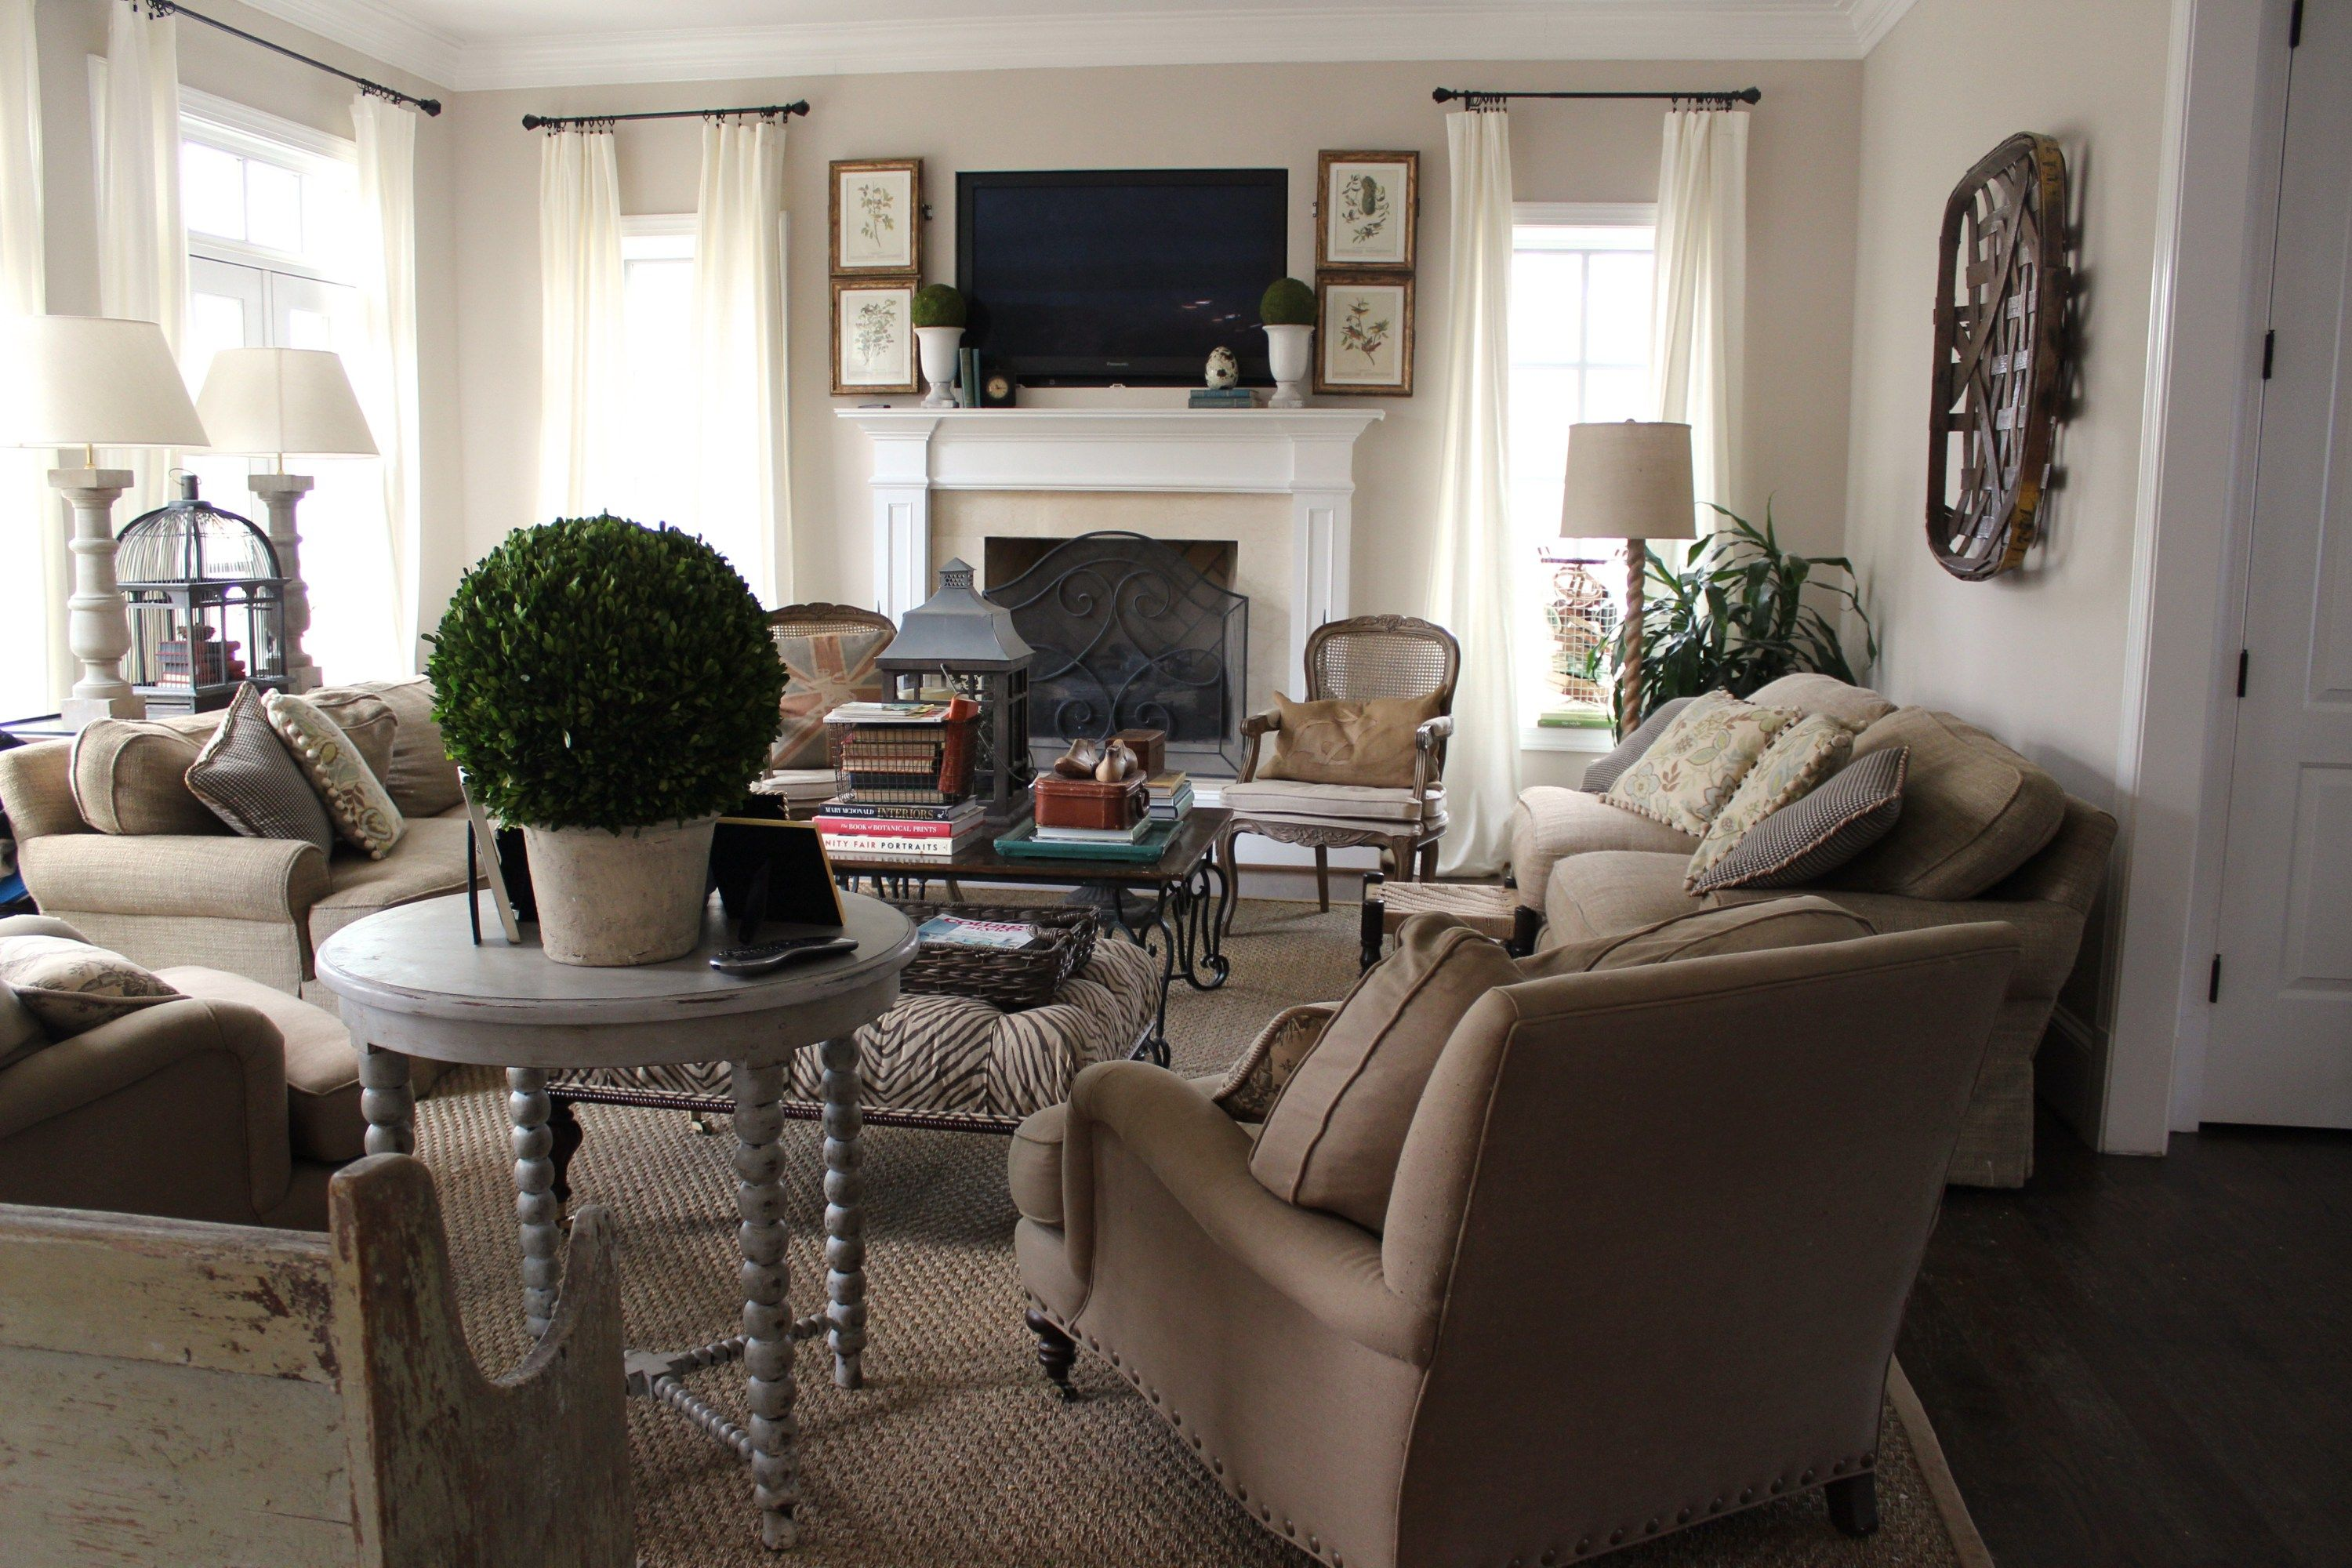 When We Designed Our Home We Knew We Wanted The First Floor To Have A Great Room Meaning A Kit Romantic Living Room Comfy Living Room Decor Living Room Decor